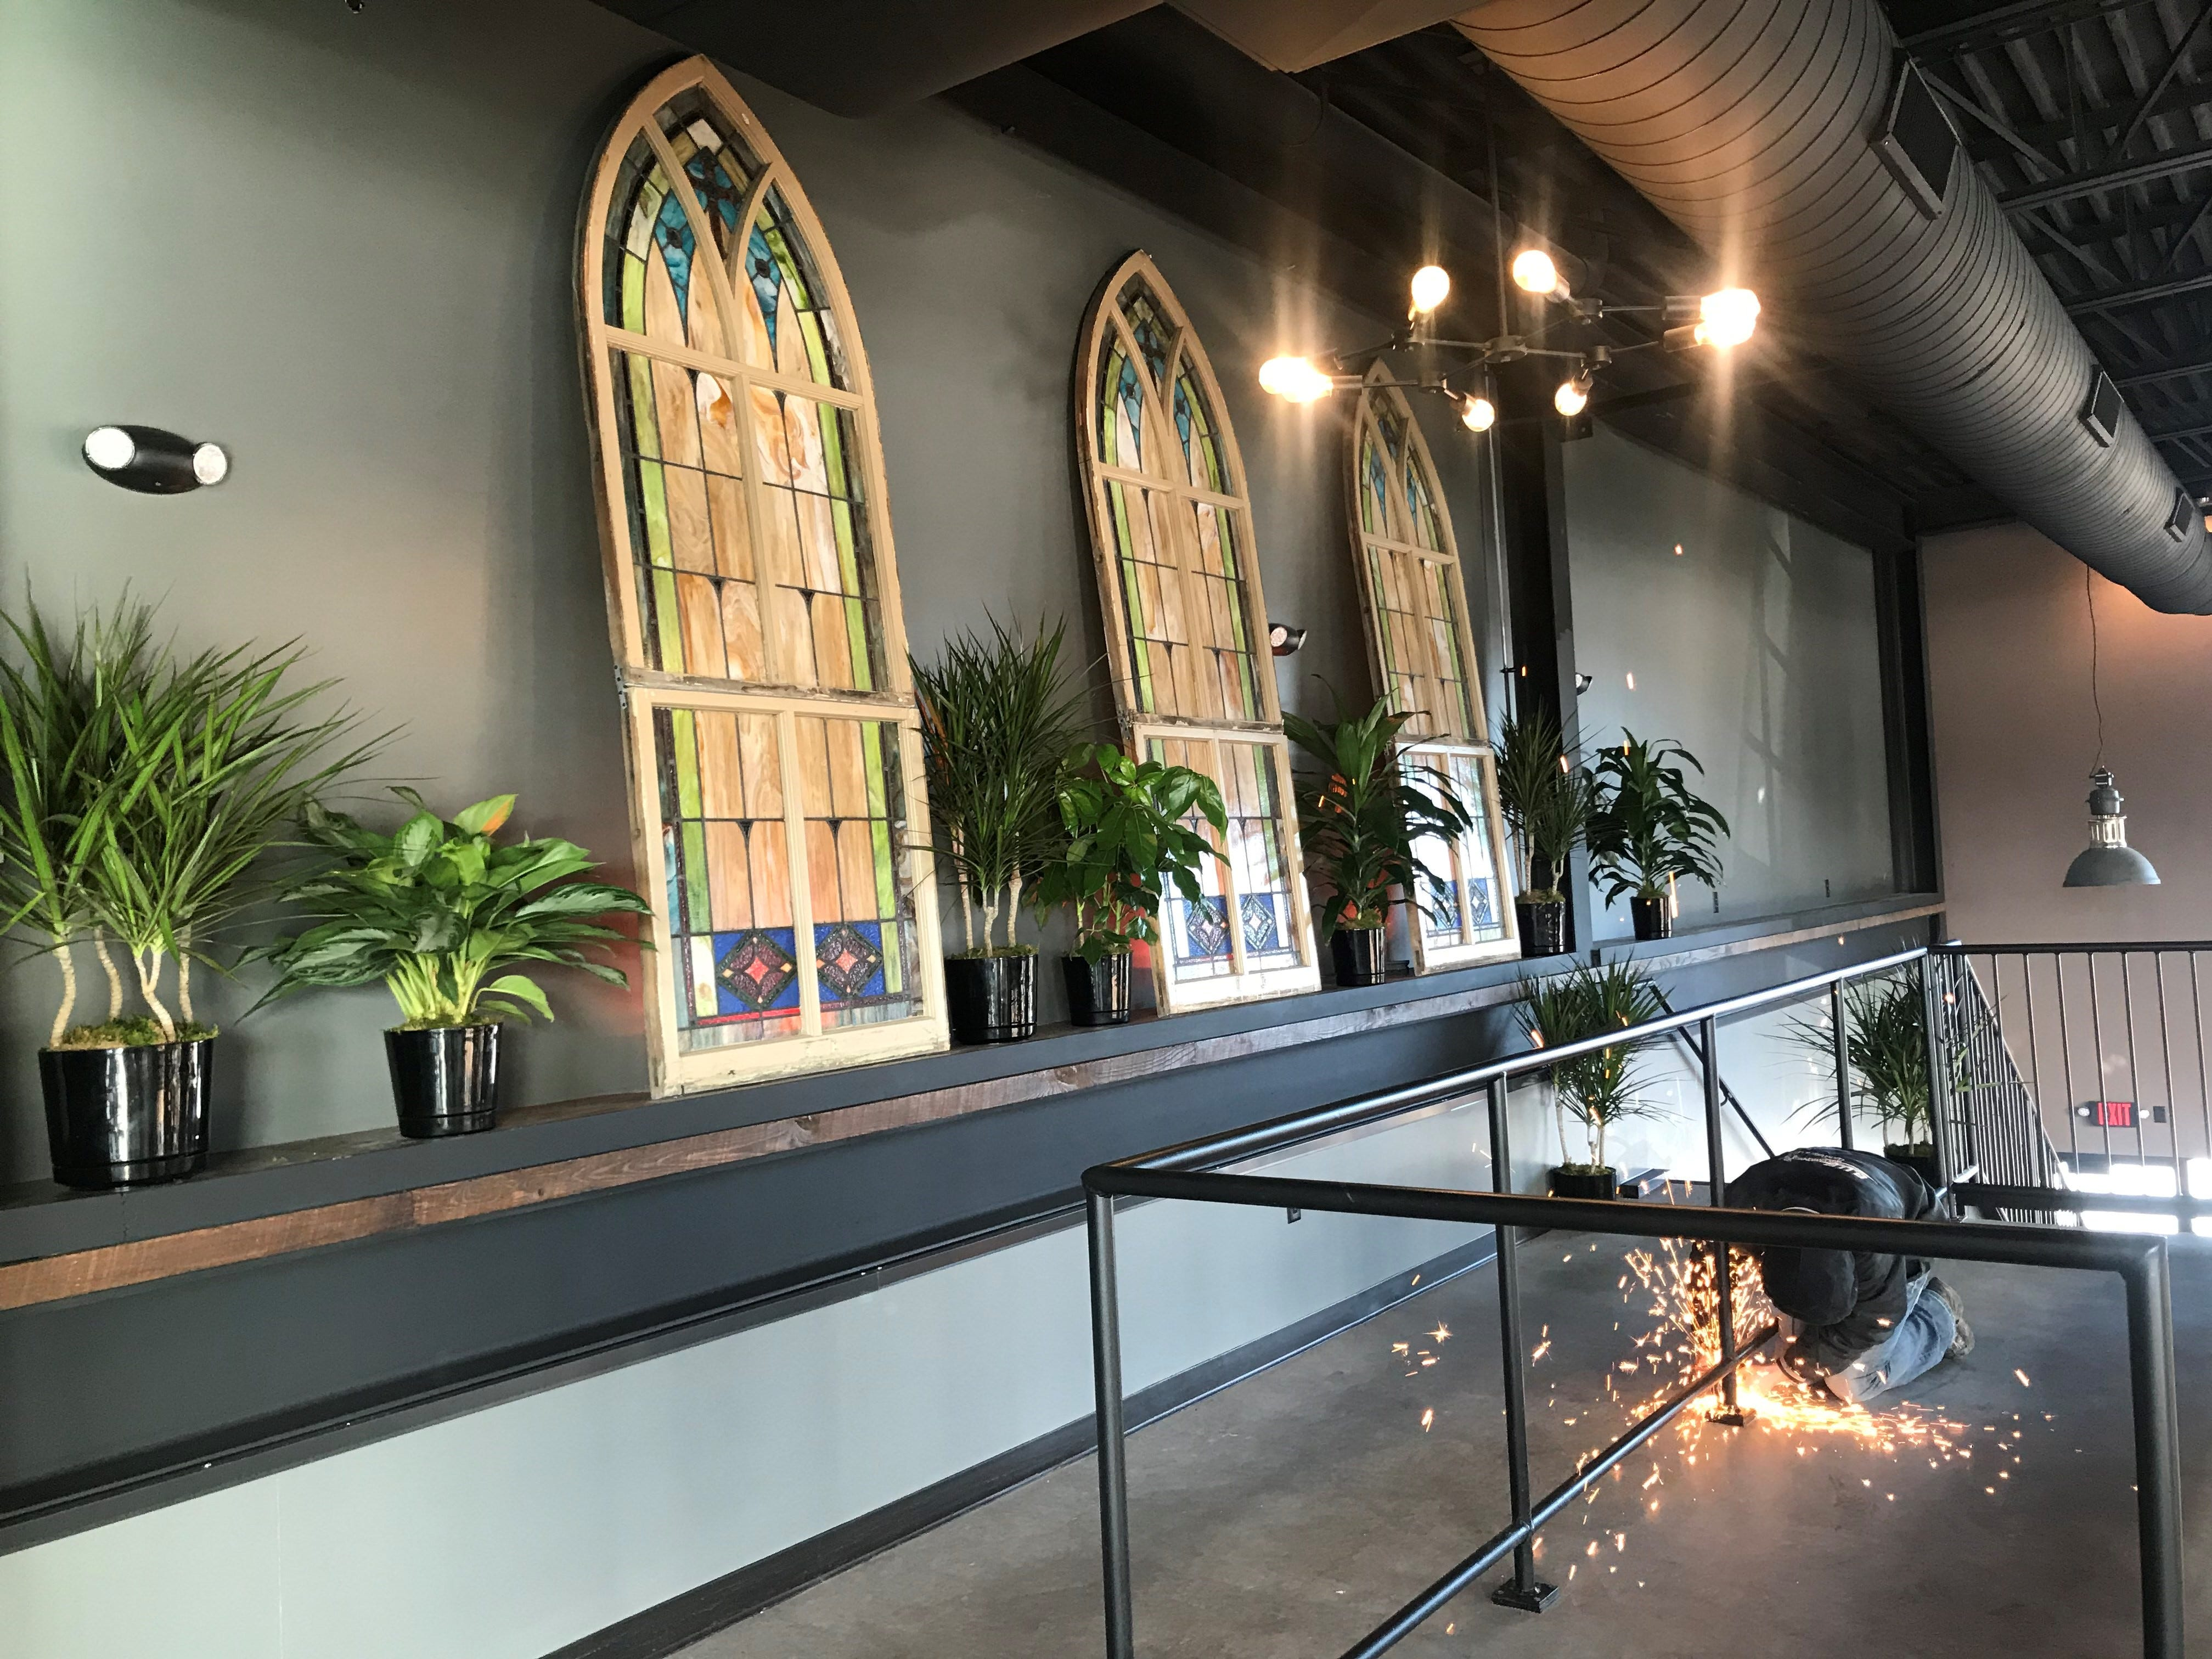 Finishing touches are put on the upper floor of Tine & Cellar, a new restaurant and bar in Weston. The stained glass windows come from an old church in Sheboygan Falls.